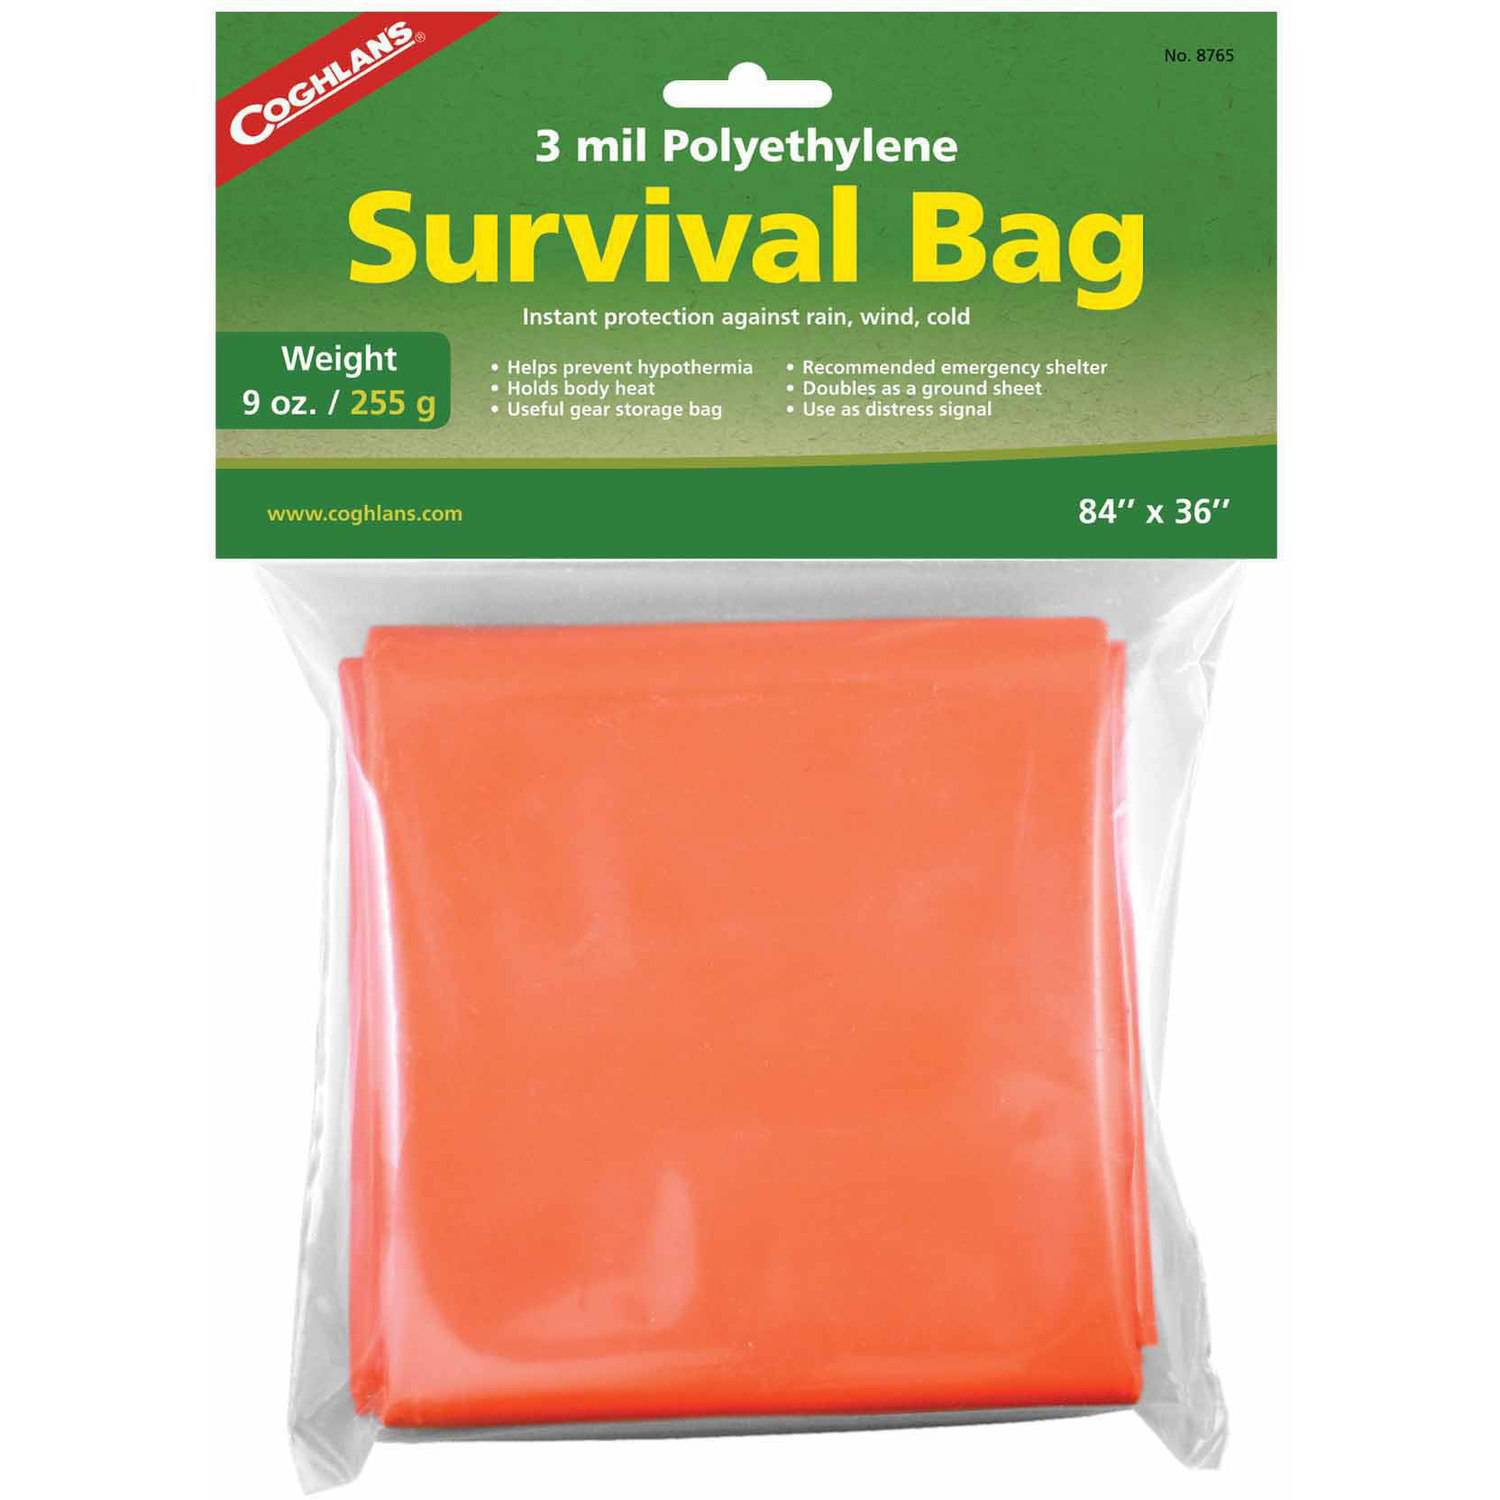 Coghlan's Survival Bag